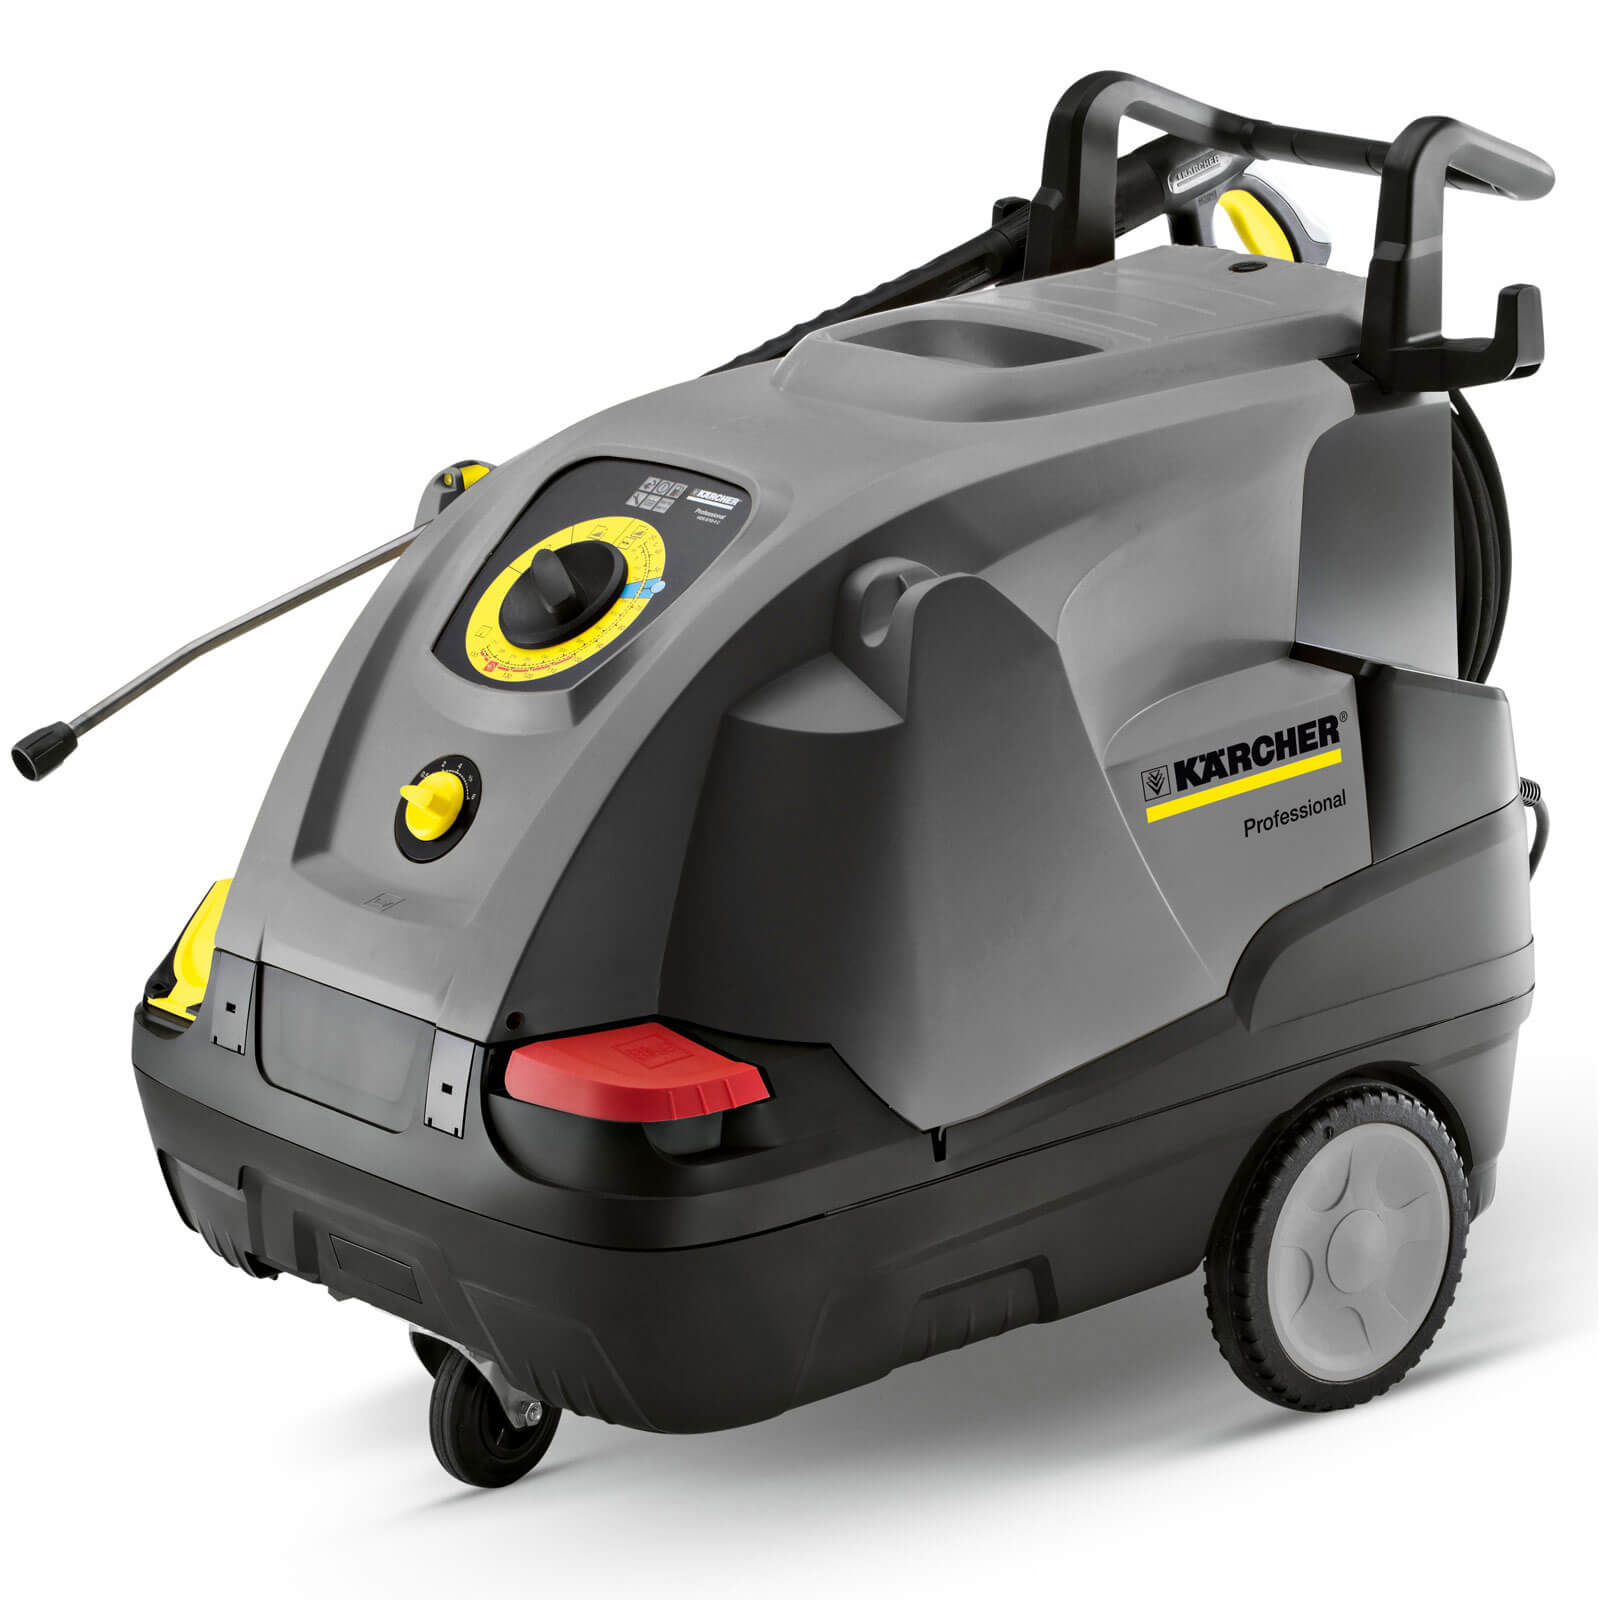 Karcher HDS 6/12 C Commercial Compact Hot Water & Steam Pressure Washer 30 - 120 Bar 3000w 240v Plus Hose Reel Worth £223